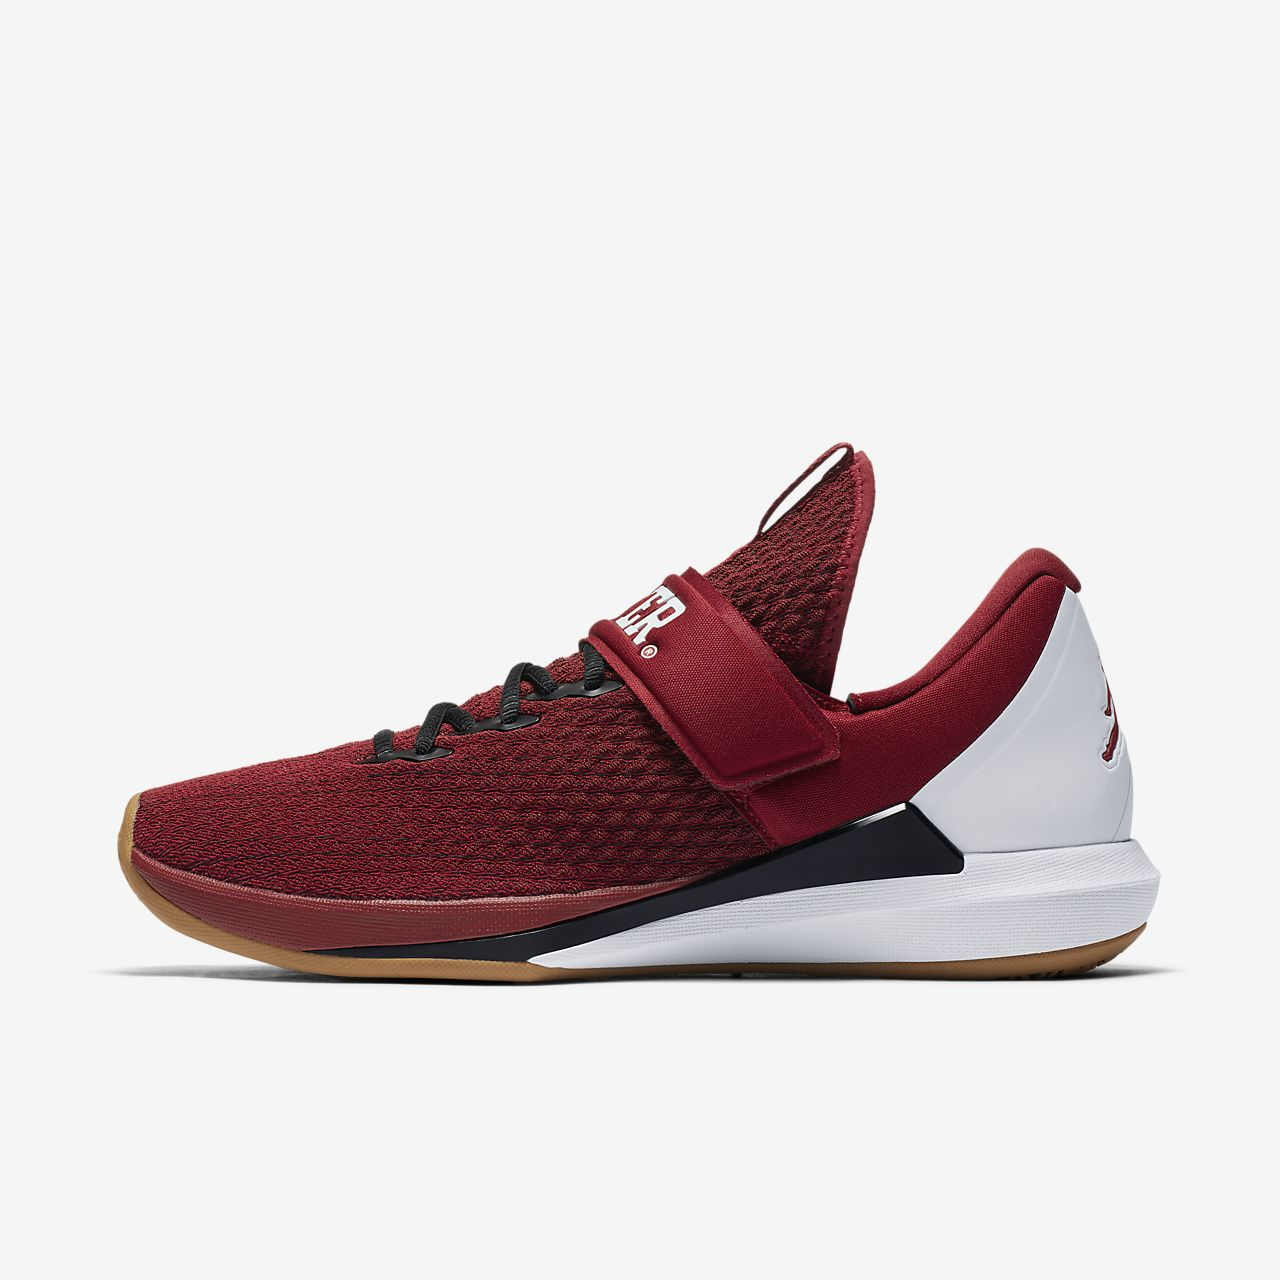 7c2a69a1252 Jordan Trainer 3 (Oklahoma) Men s Training Shoe. Nike.com